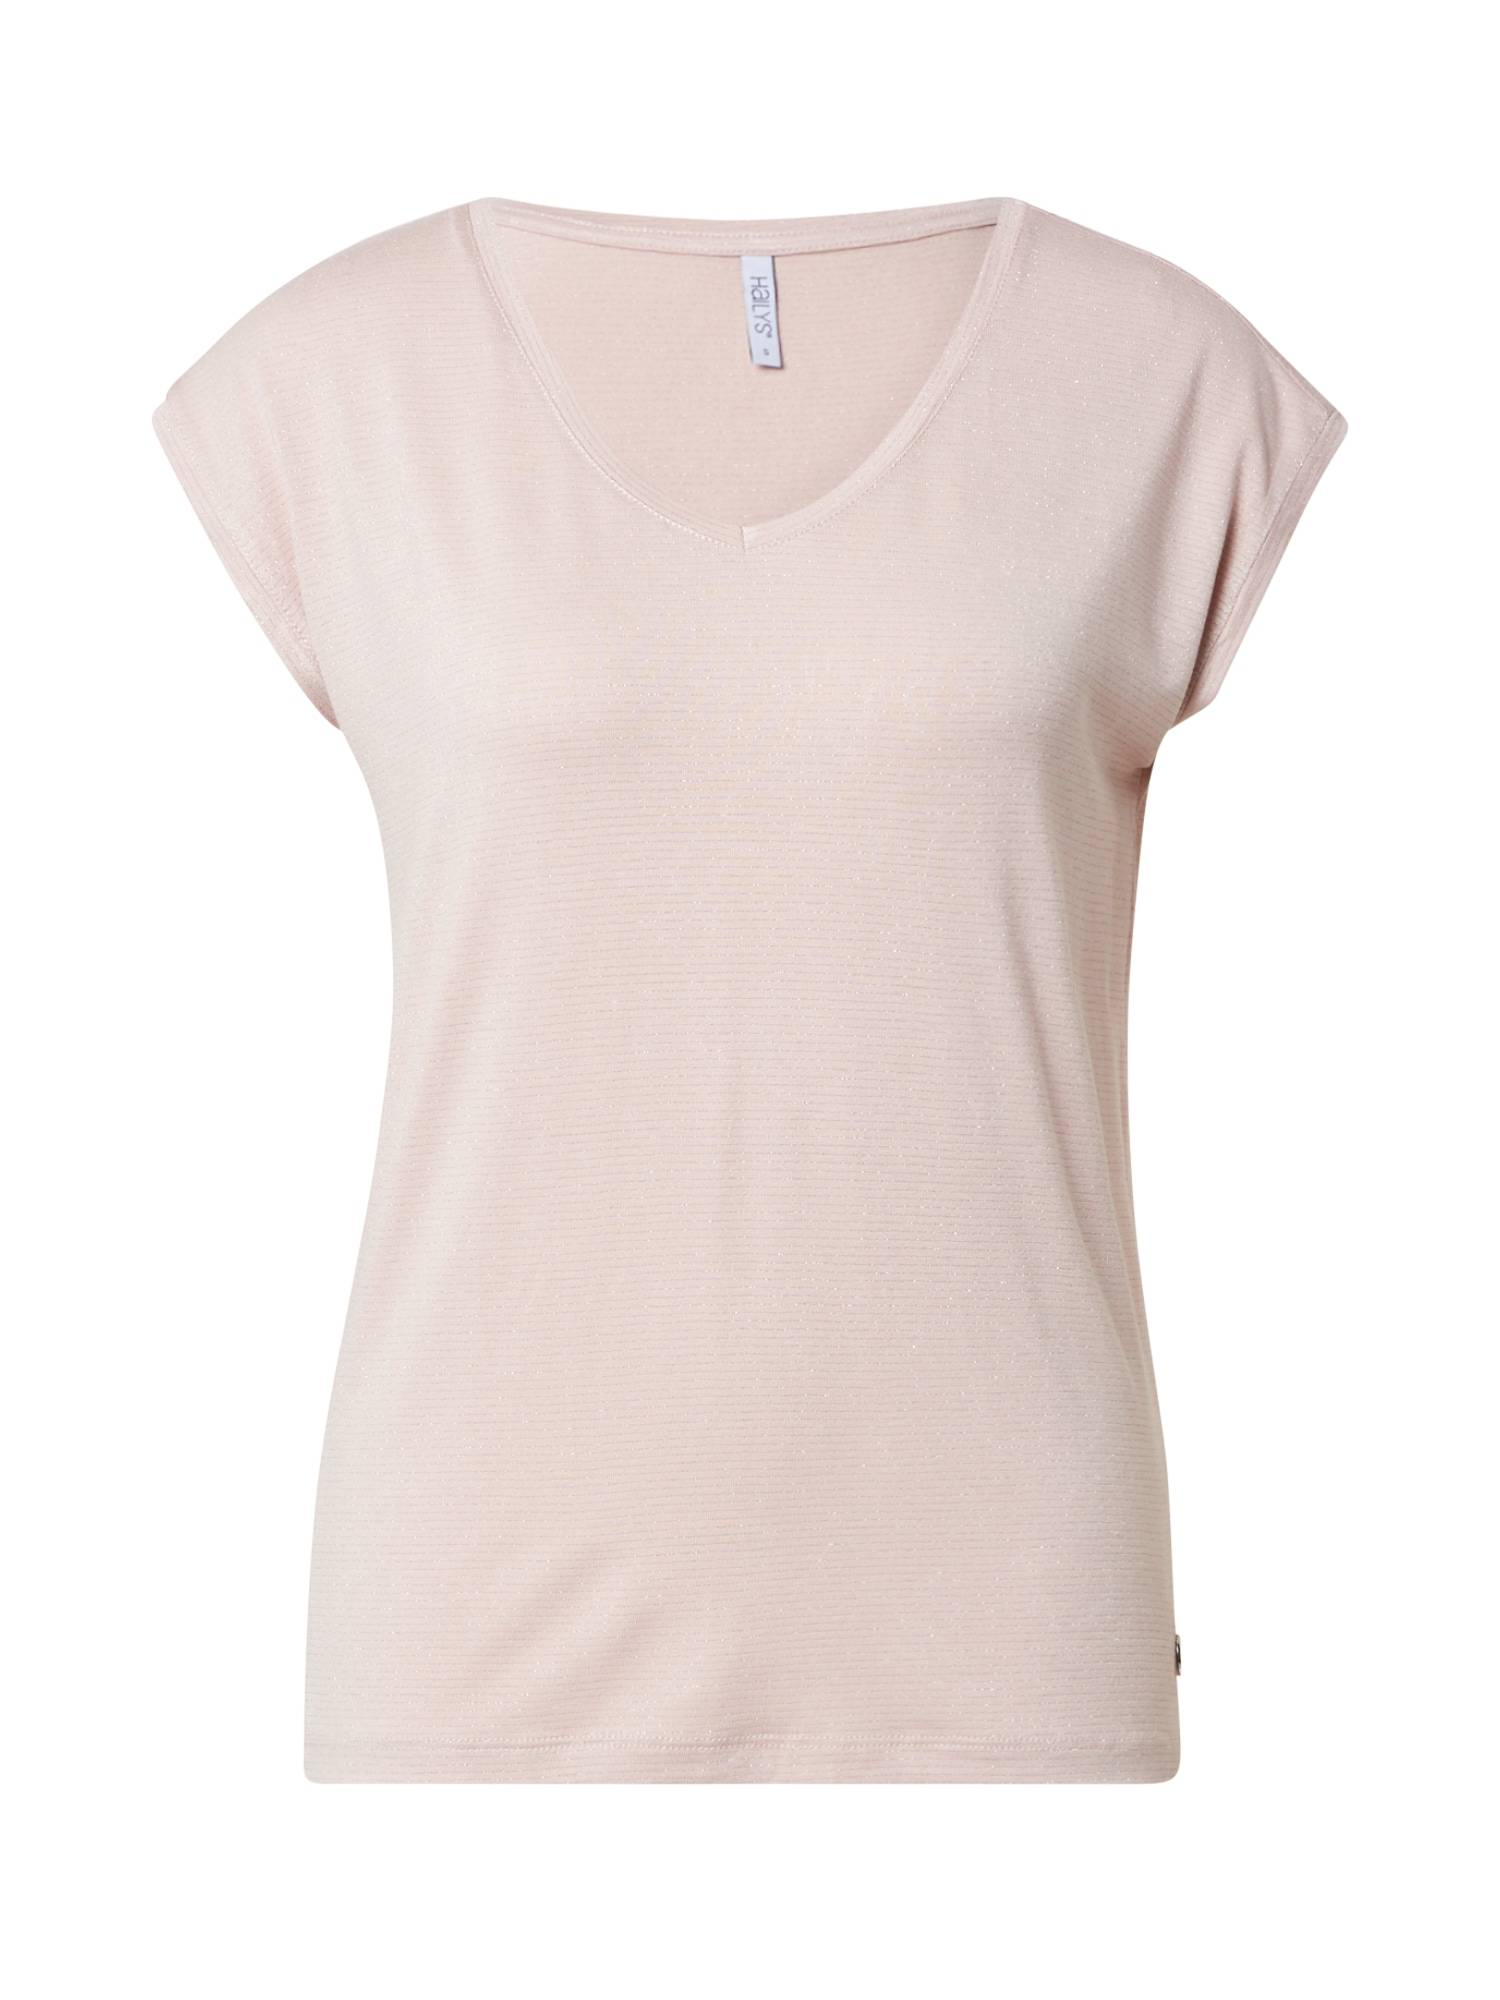 Hailys T-shirt 'TP Luxe'  - Rose - Taille: M - female